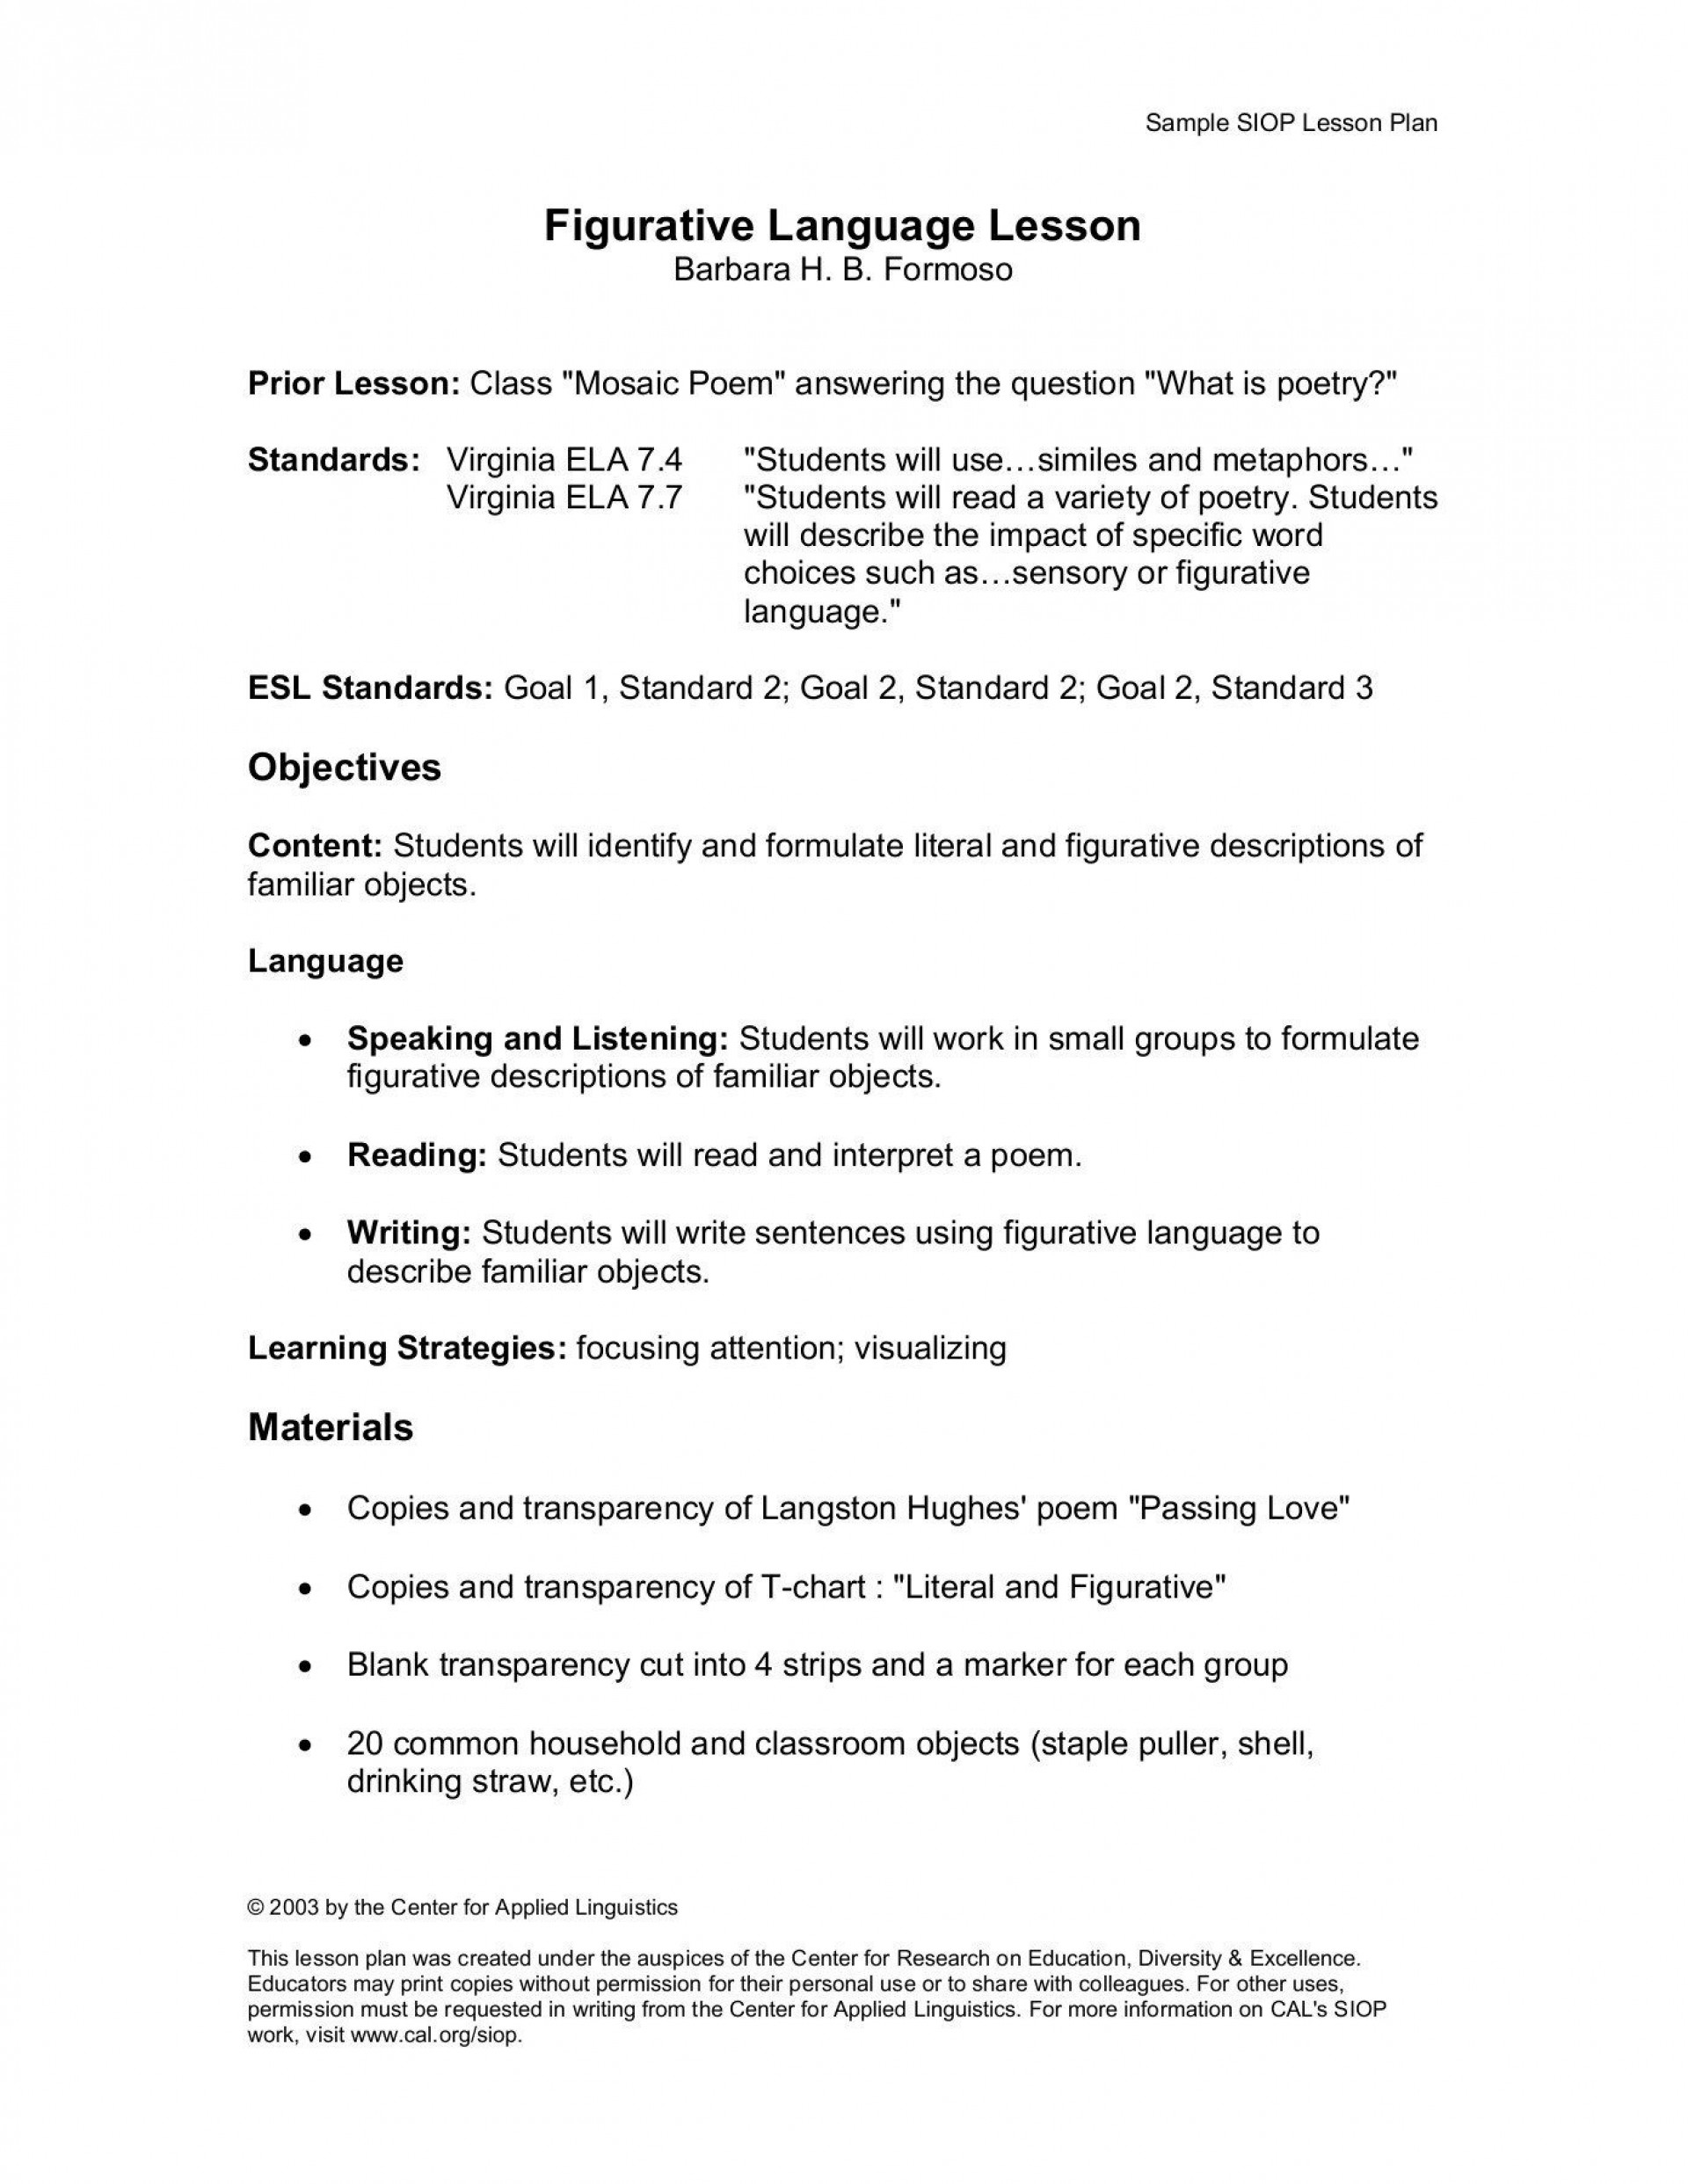 001 Unusual Siop Lesson Plan Template 1 Example High Definition 1920